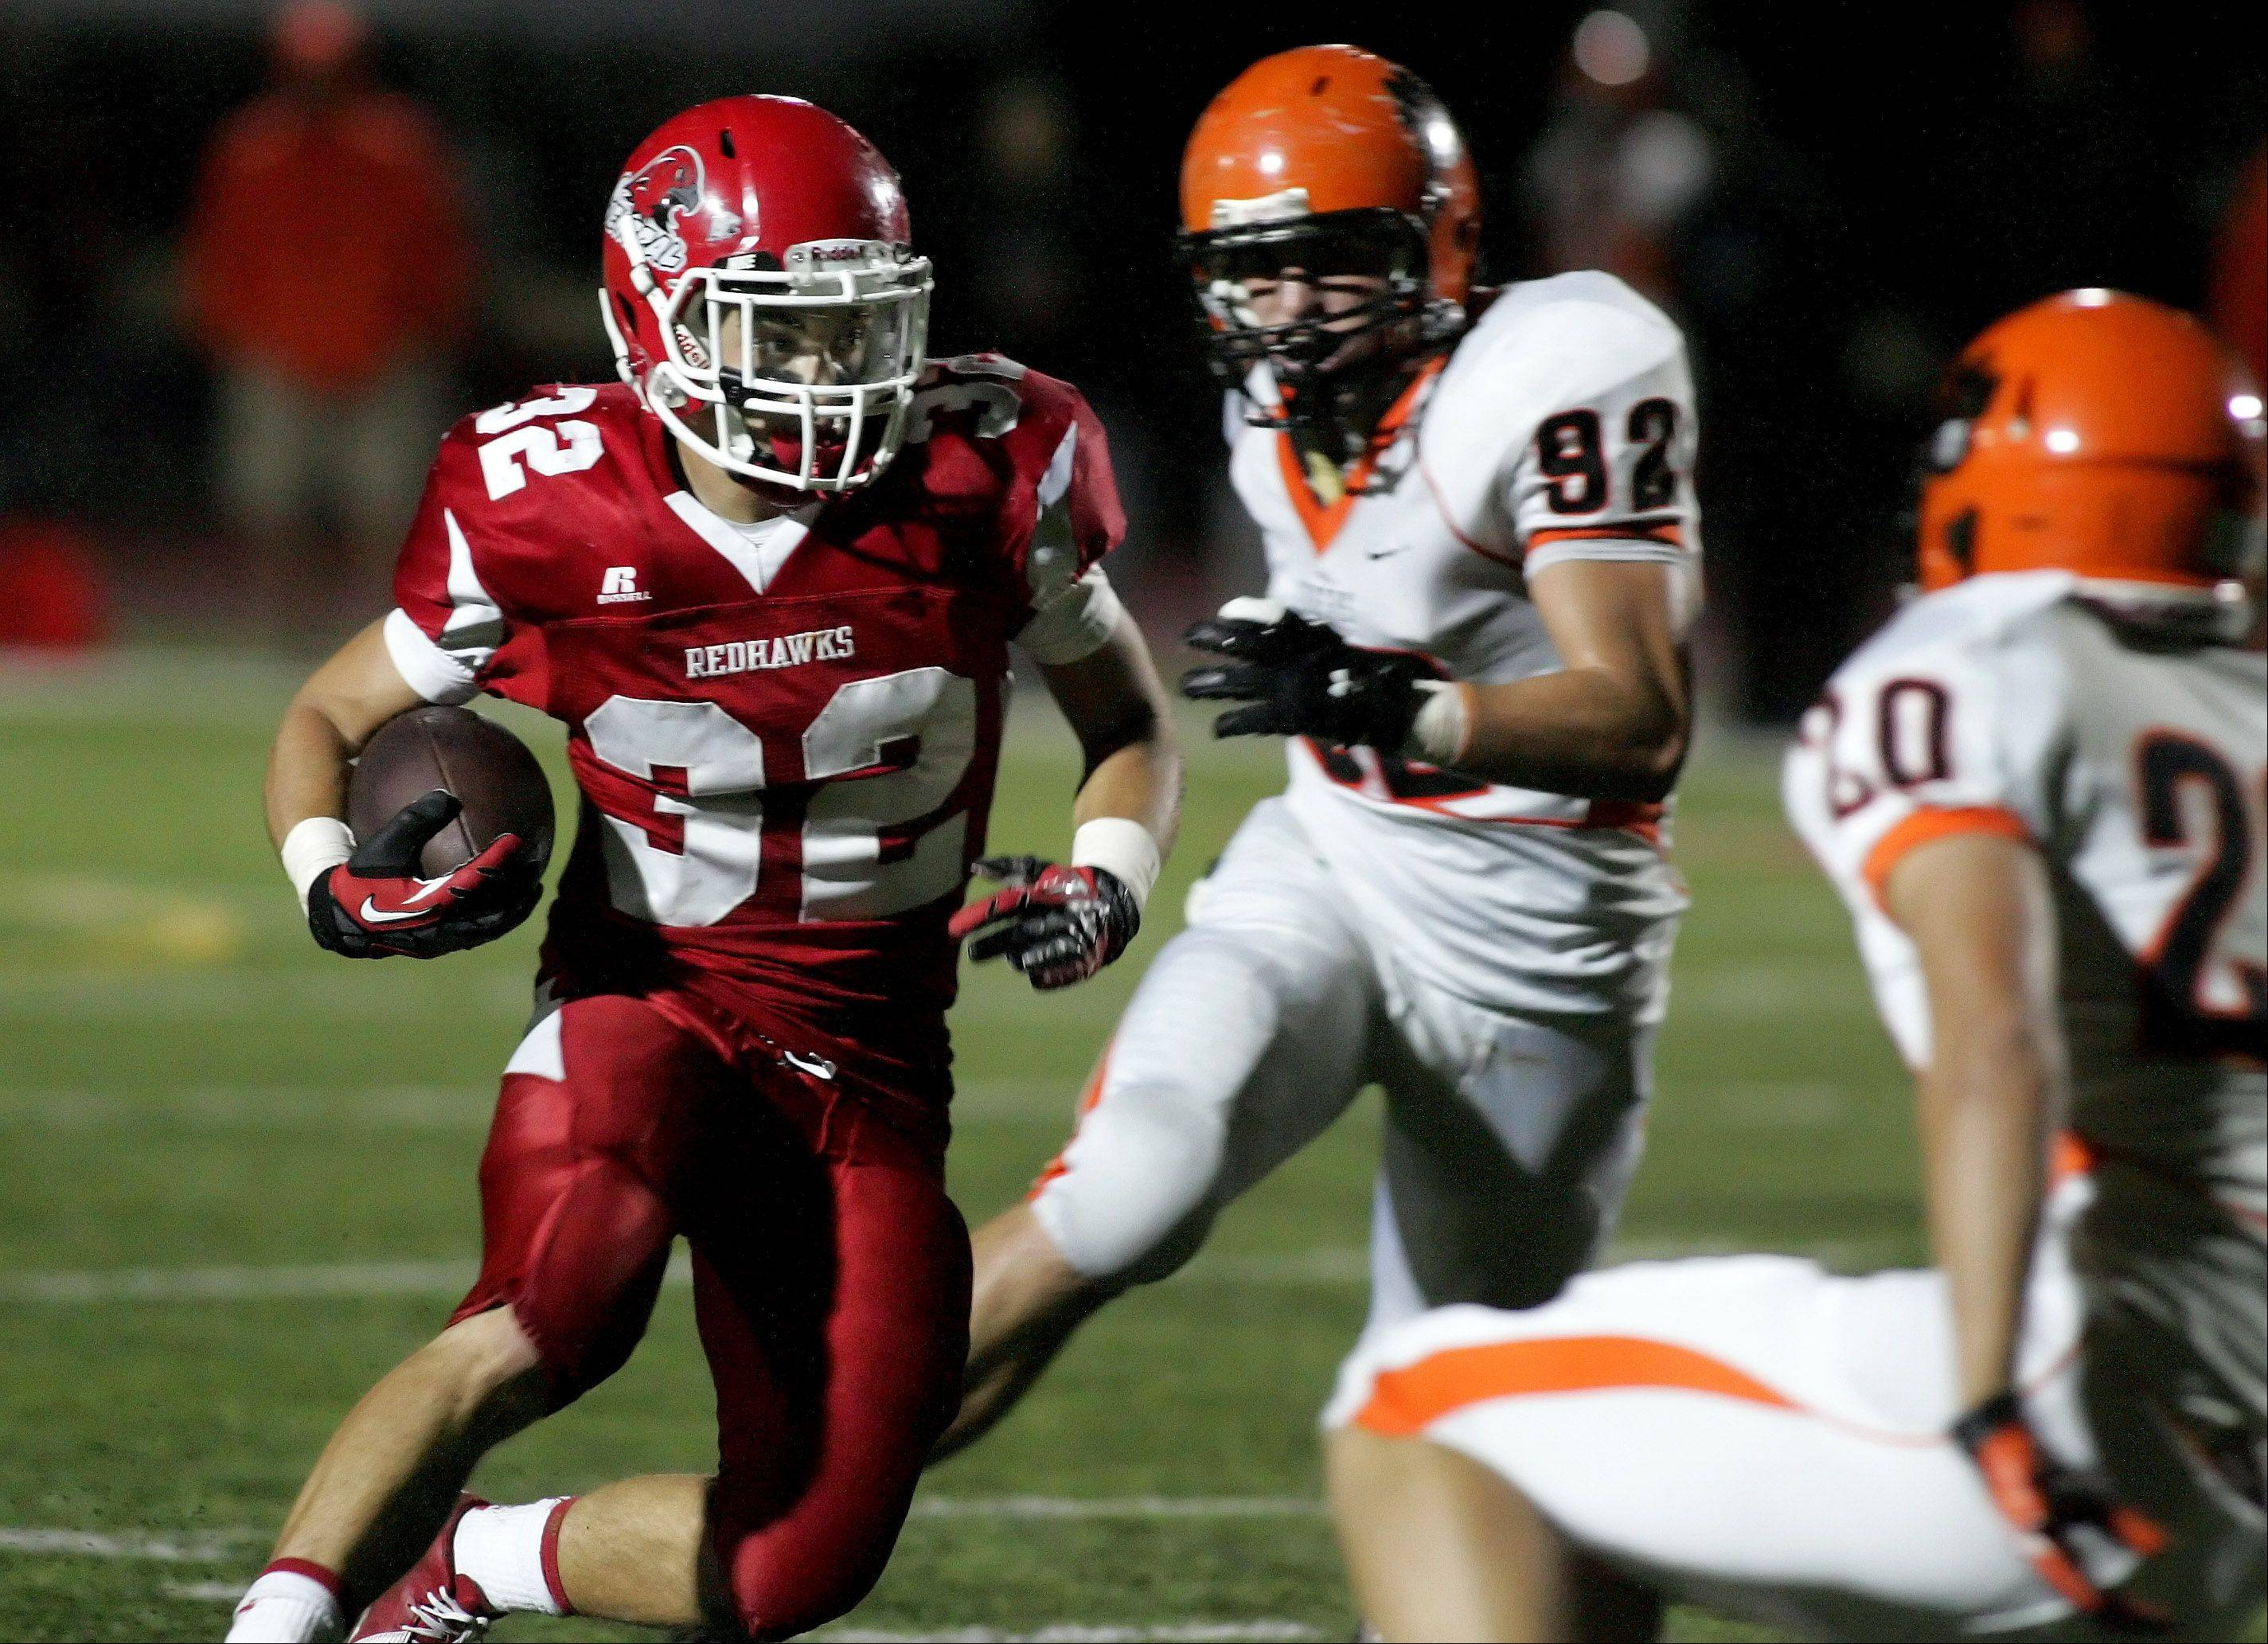 Nick Thomas of Naperville Central makes his way through the Wheaton Warrenville South defense.